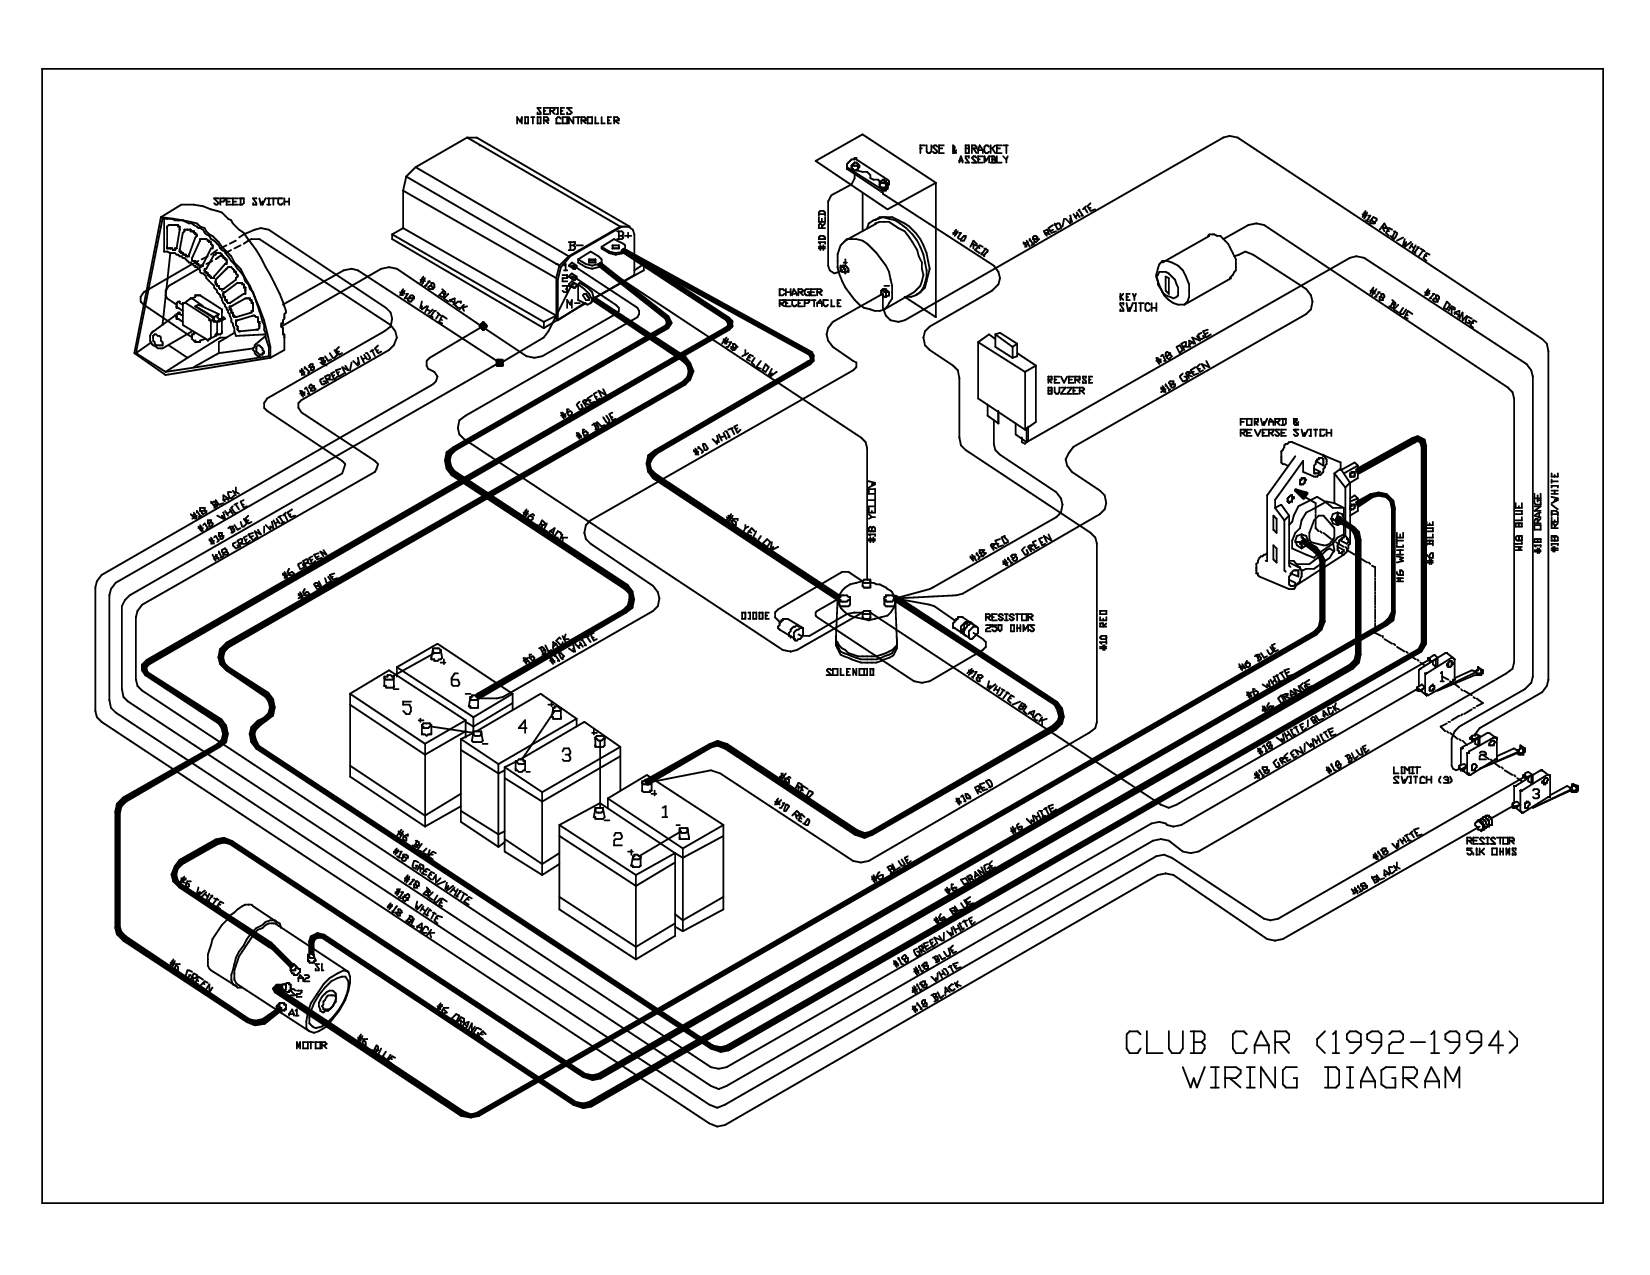 wiring diagram 1997 club car ds with owner manual \u0026 wiring diagram Club Car Parts Lookup